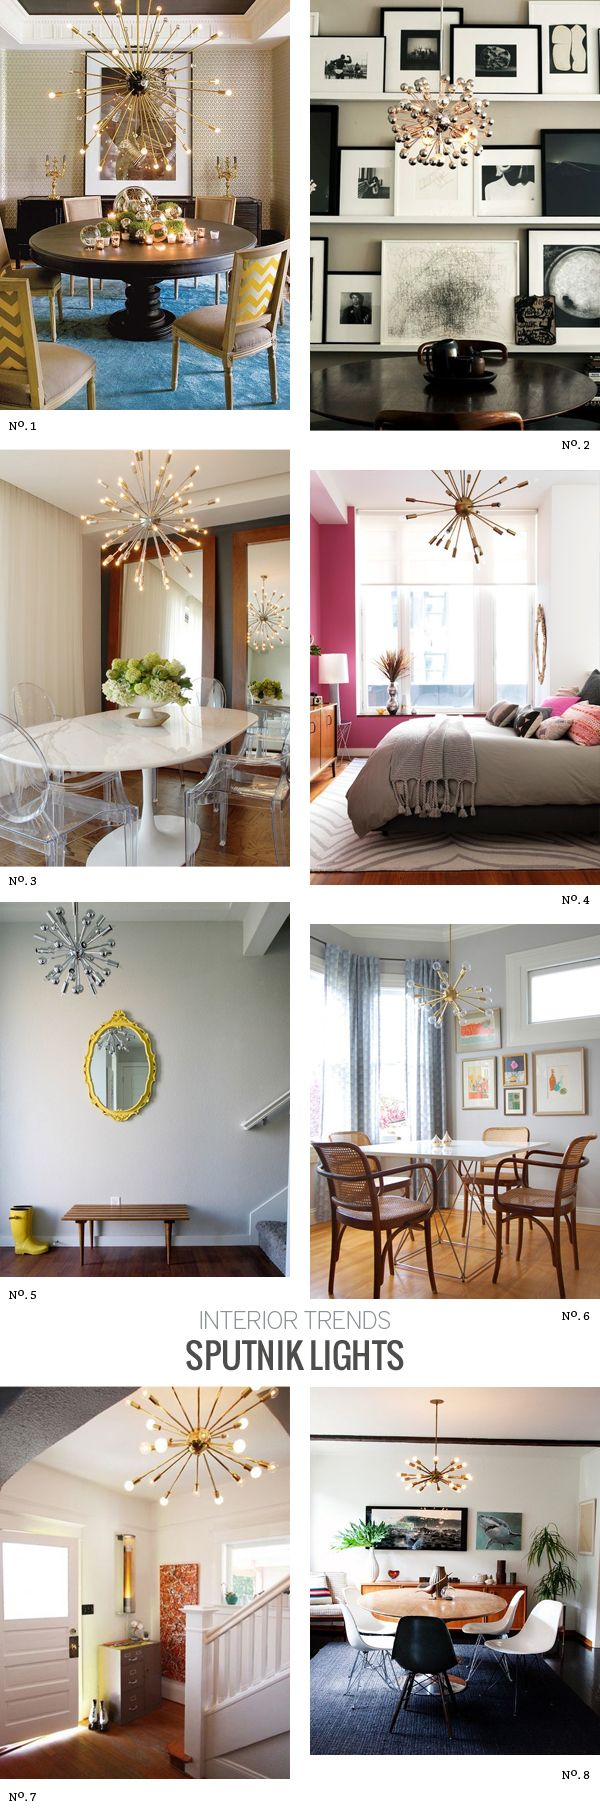 Sputnik Light Roundup By @Modern Eve Featuring Choices From Lamps Plus  #pendant #chandelier